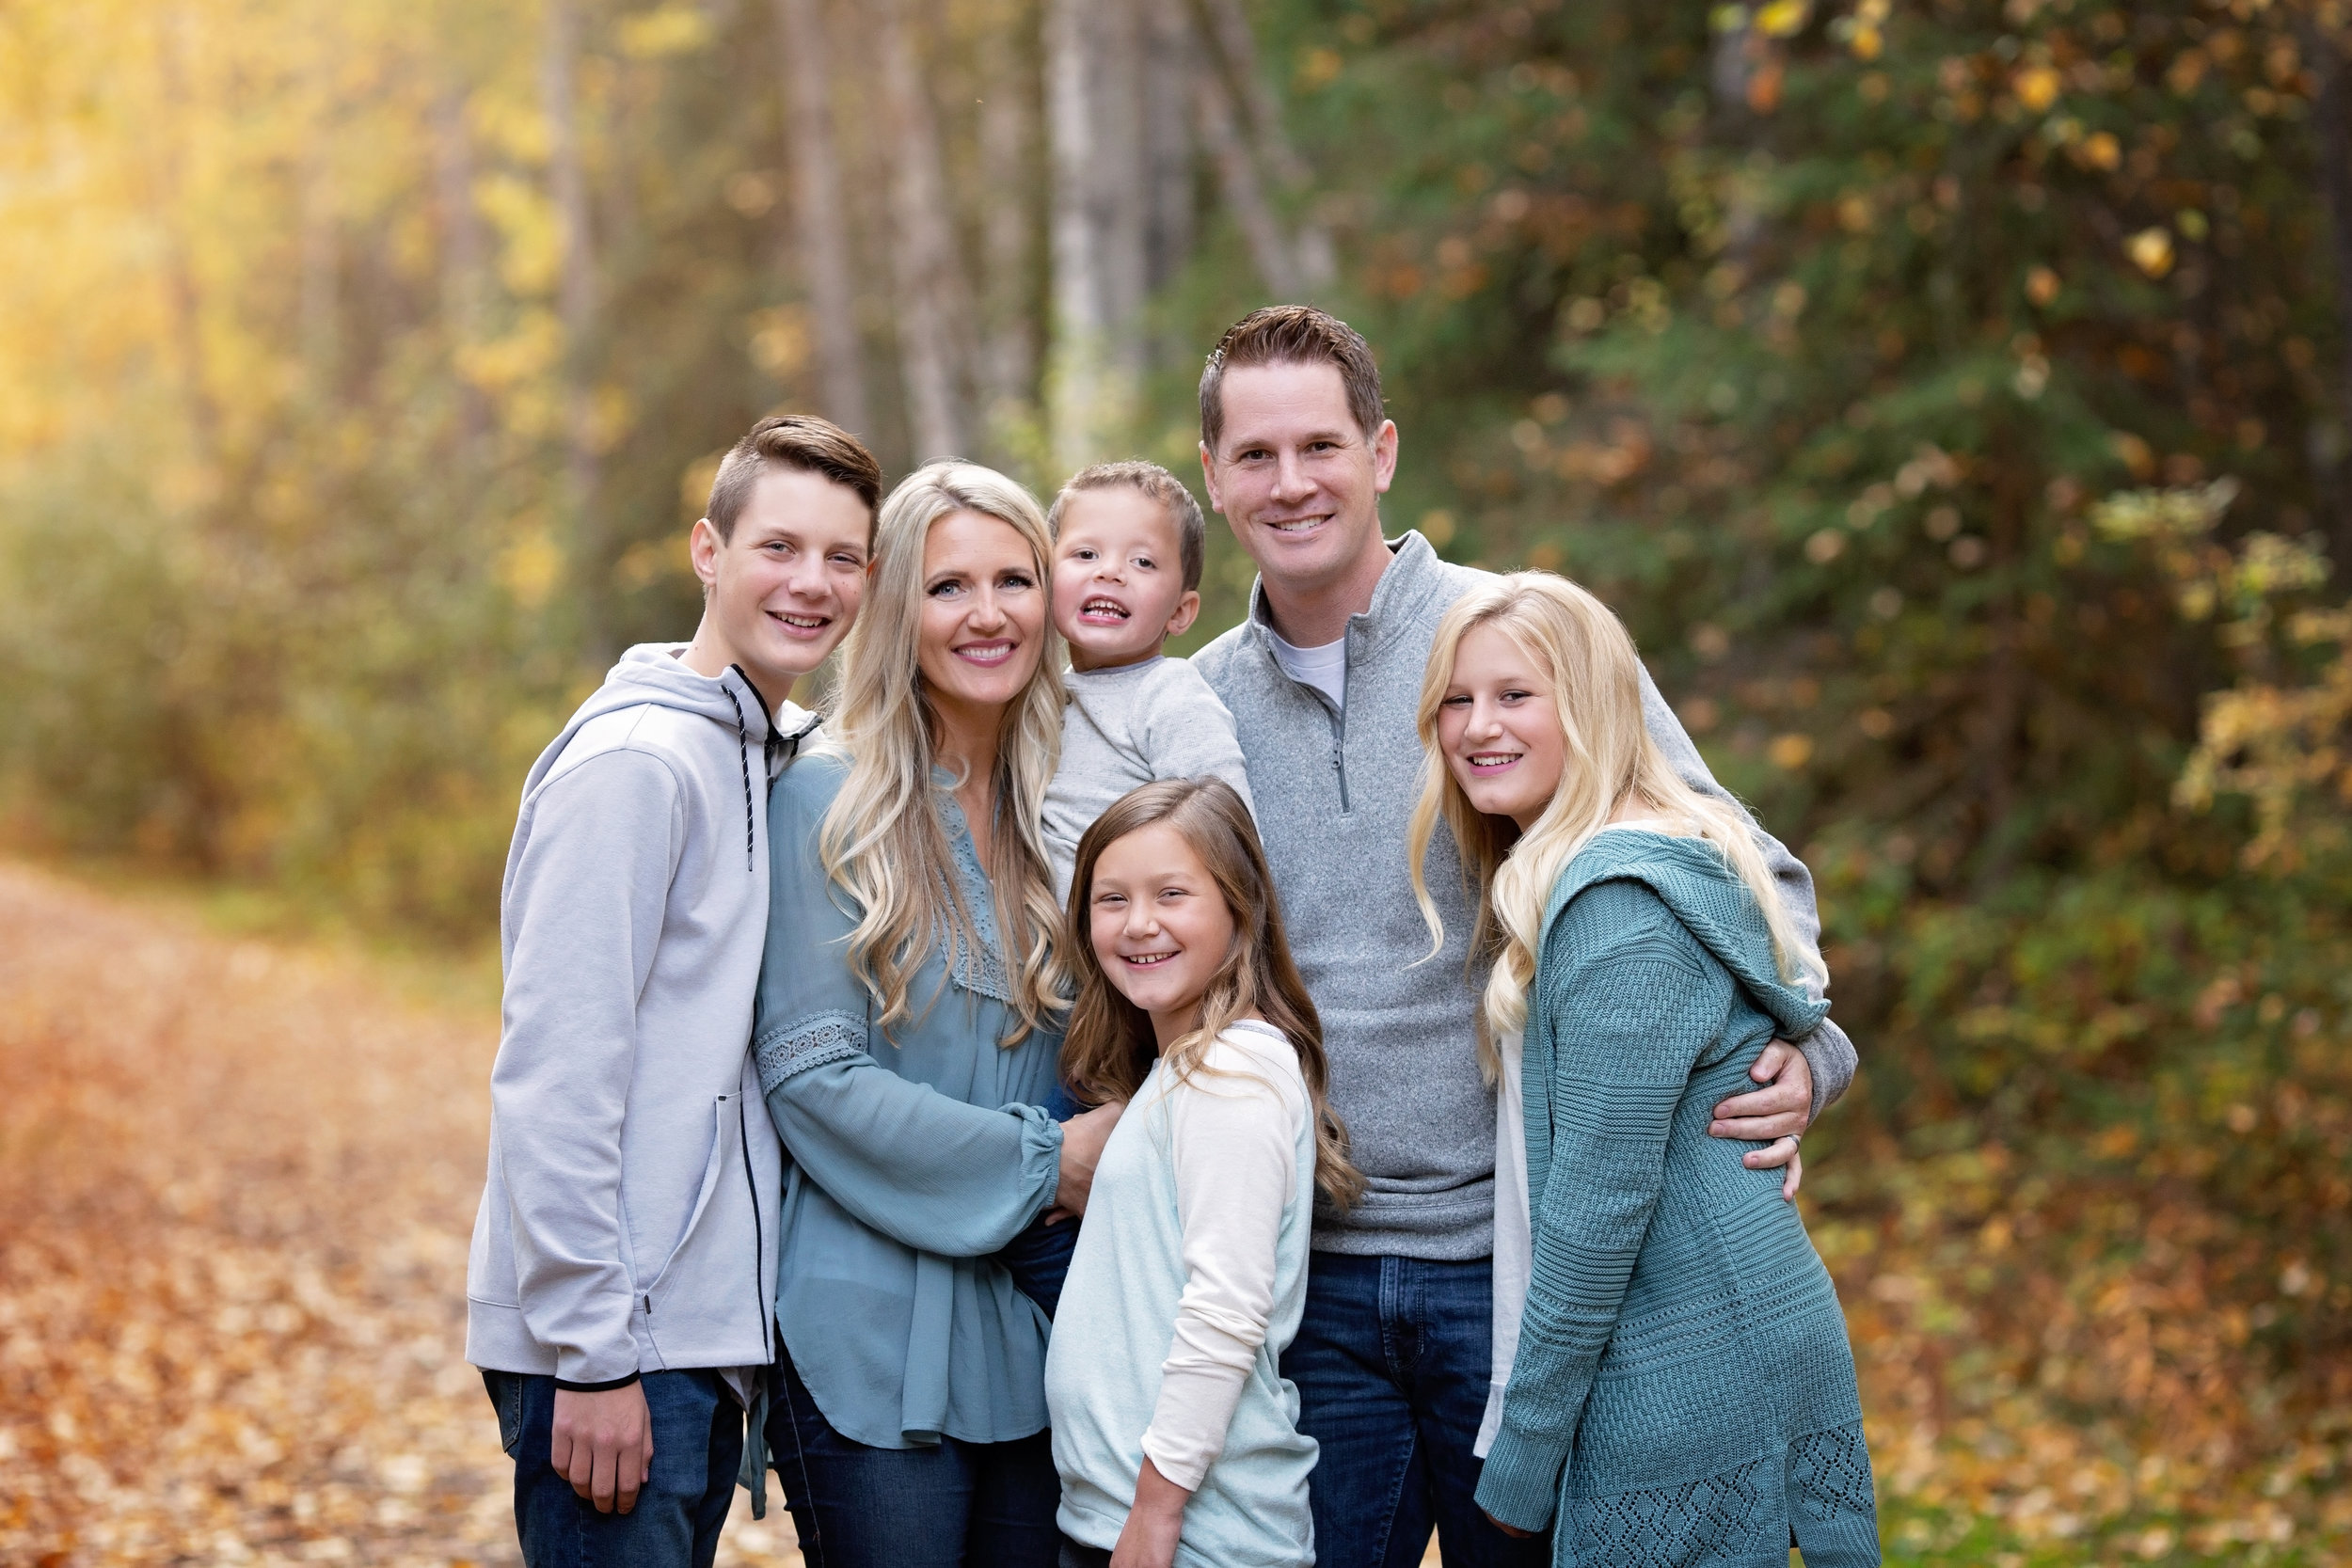 anchorage-family-photographer-4.jpg